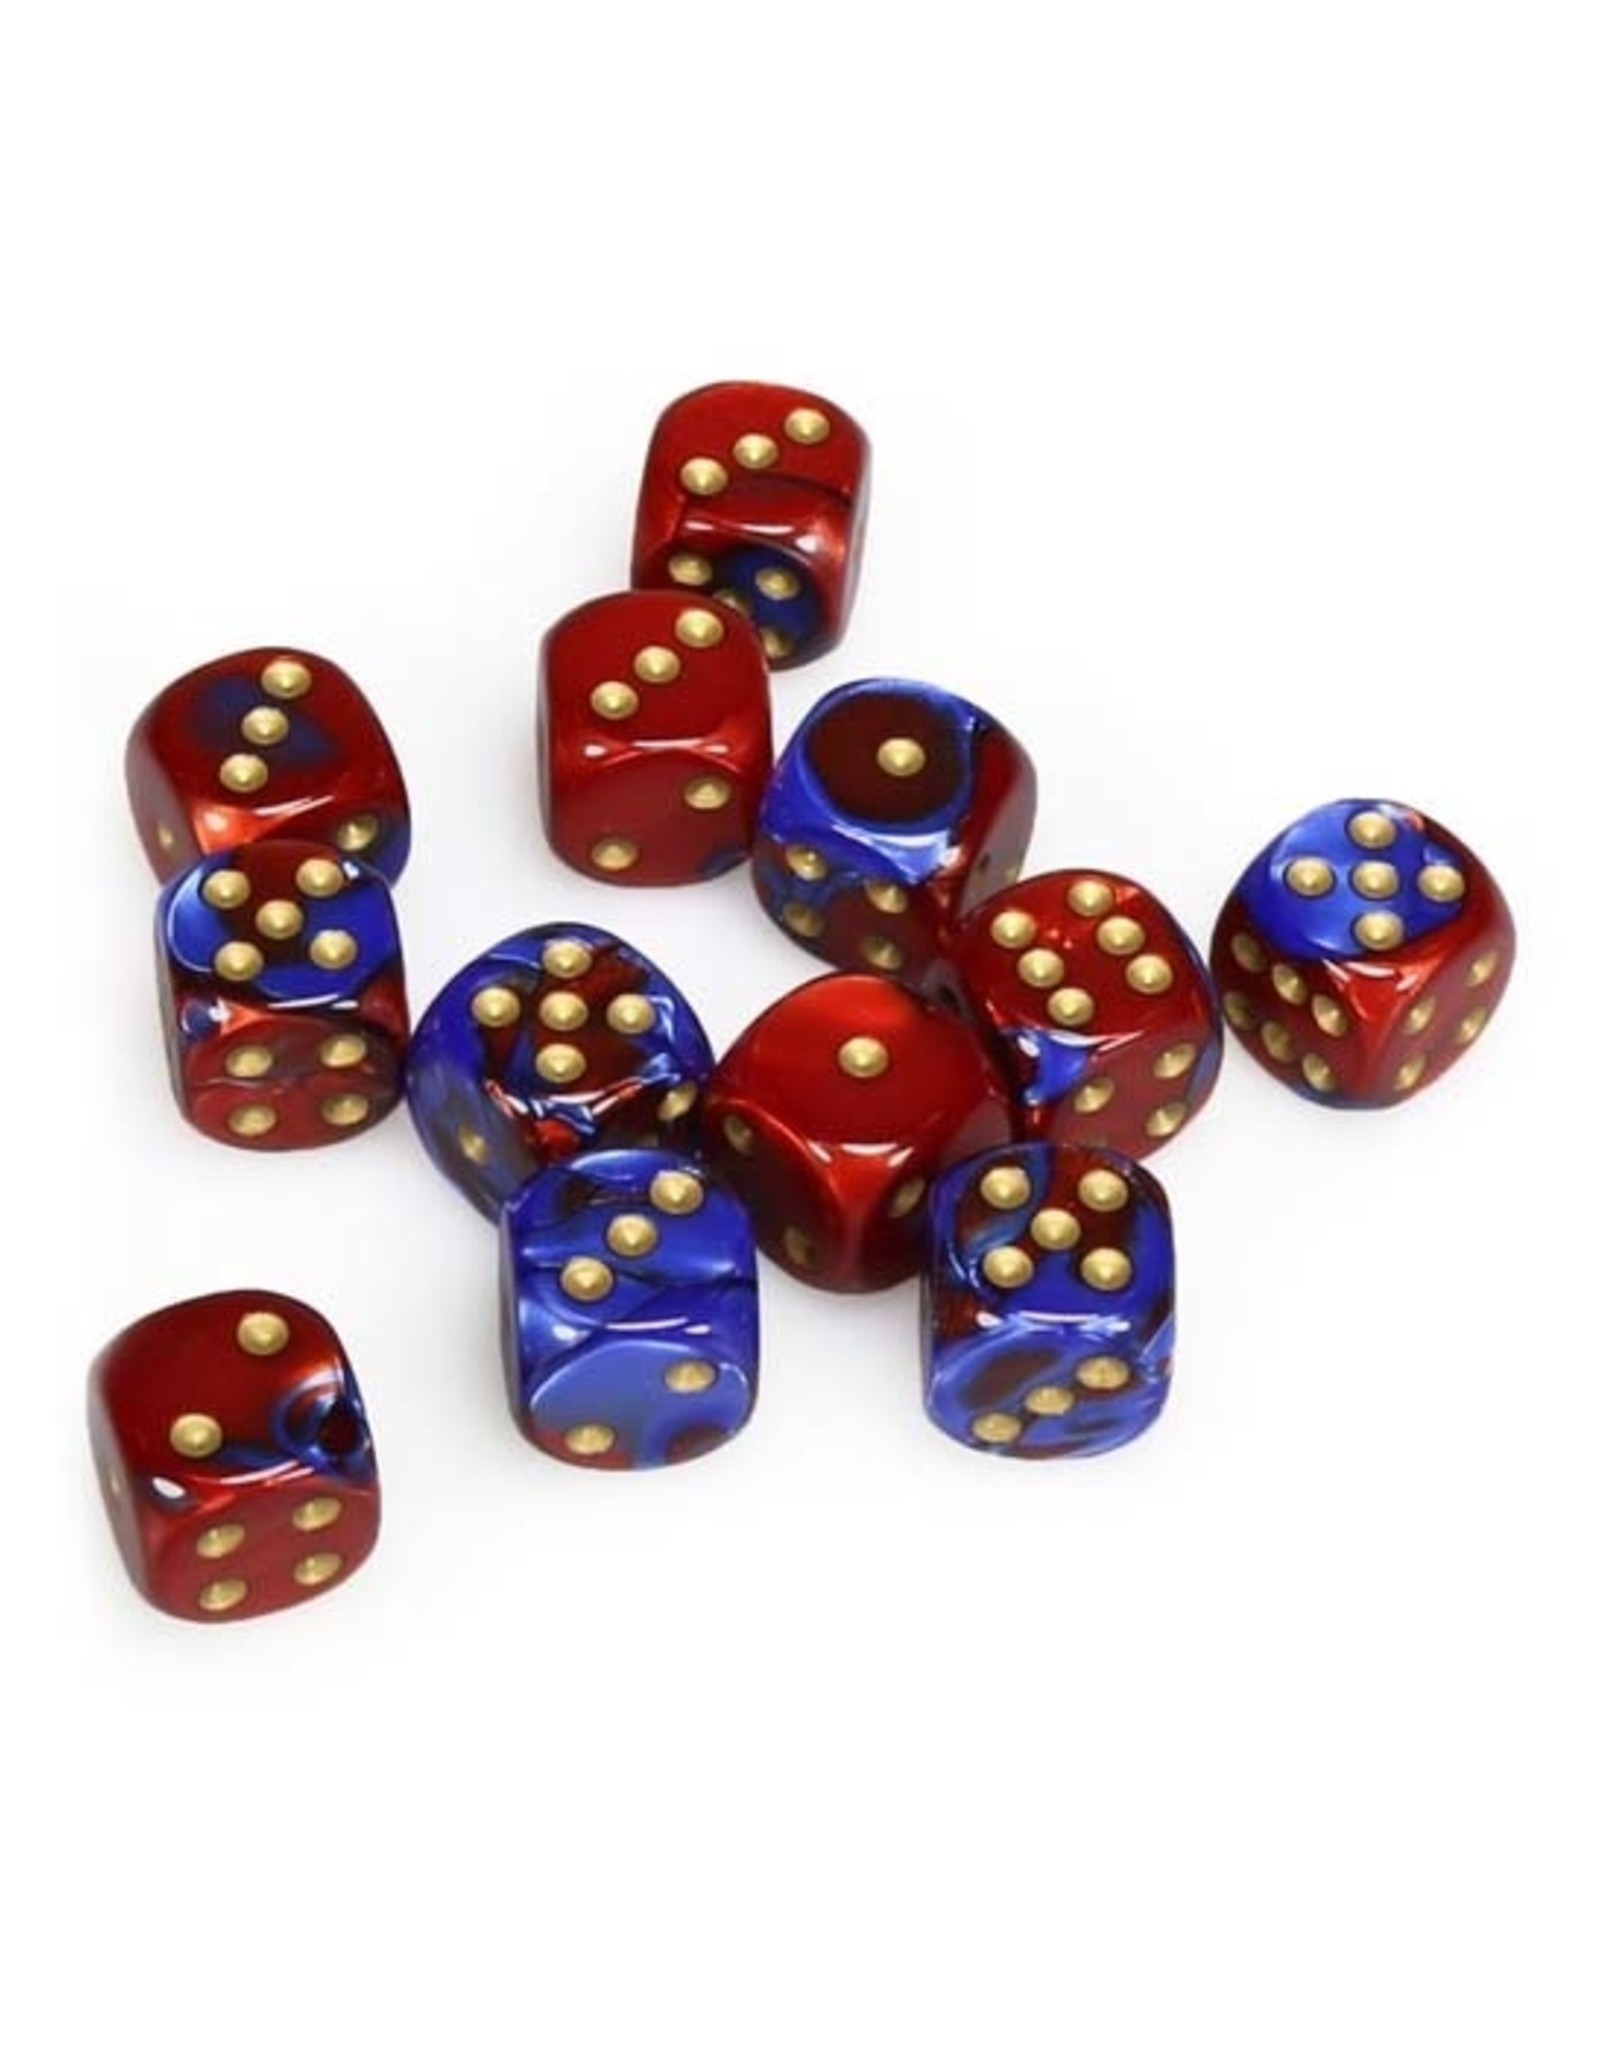 Chessex Chessex: 16mm D6 - Gemini - Blue-Red w/ Gold